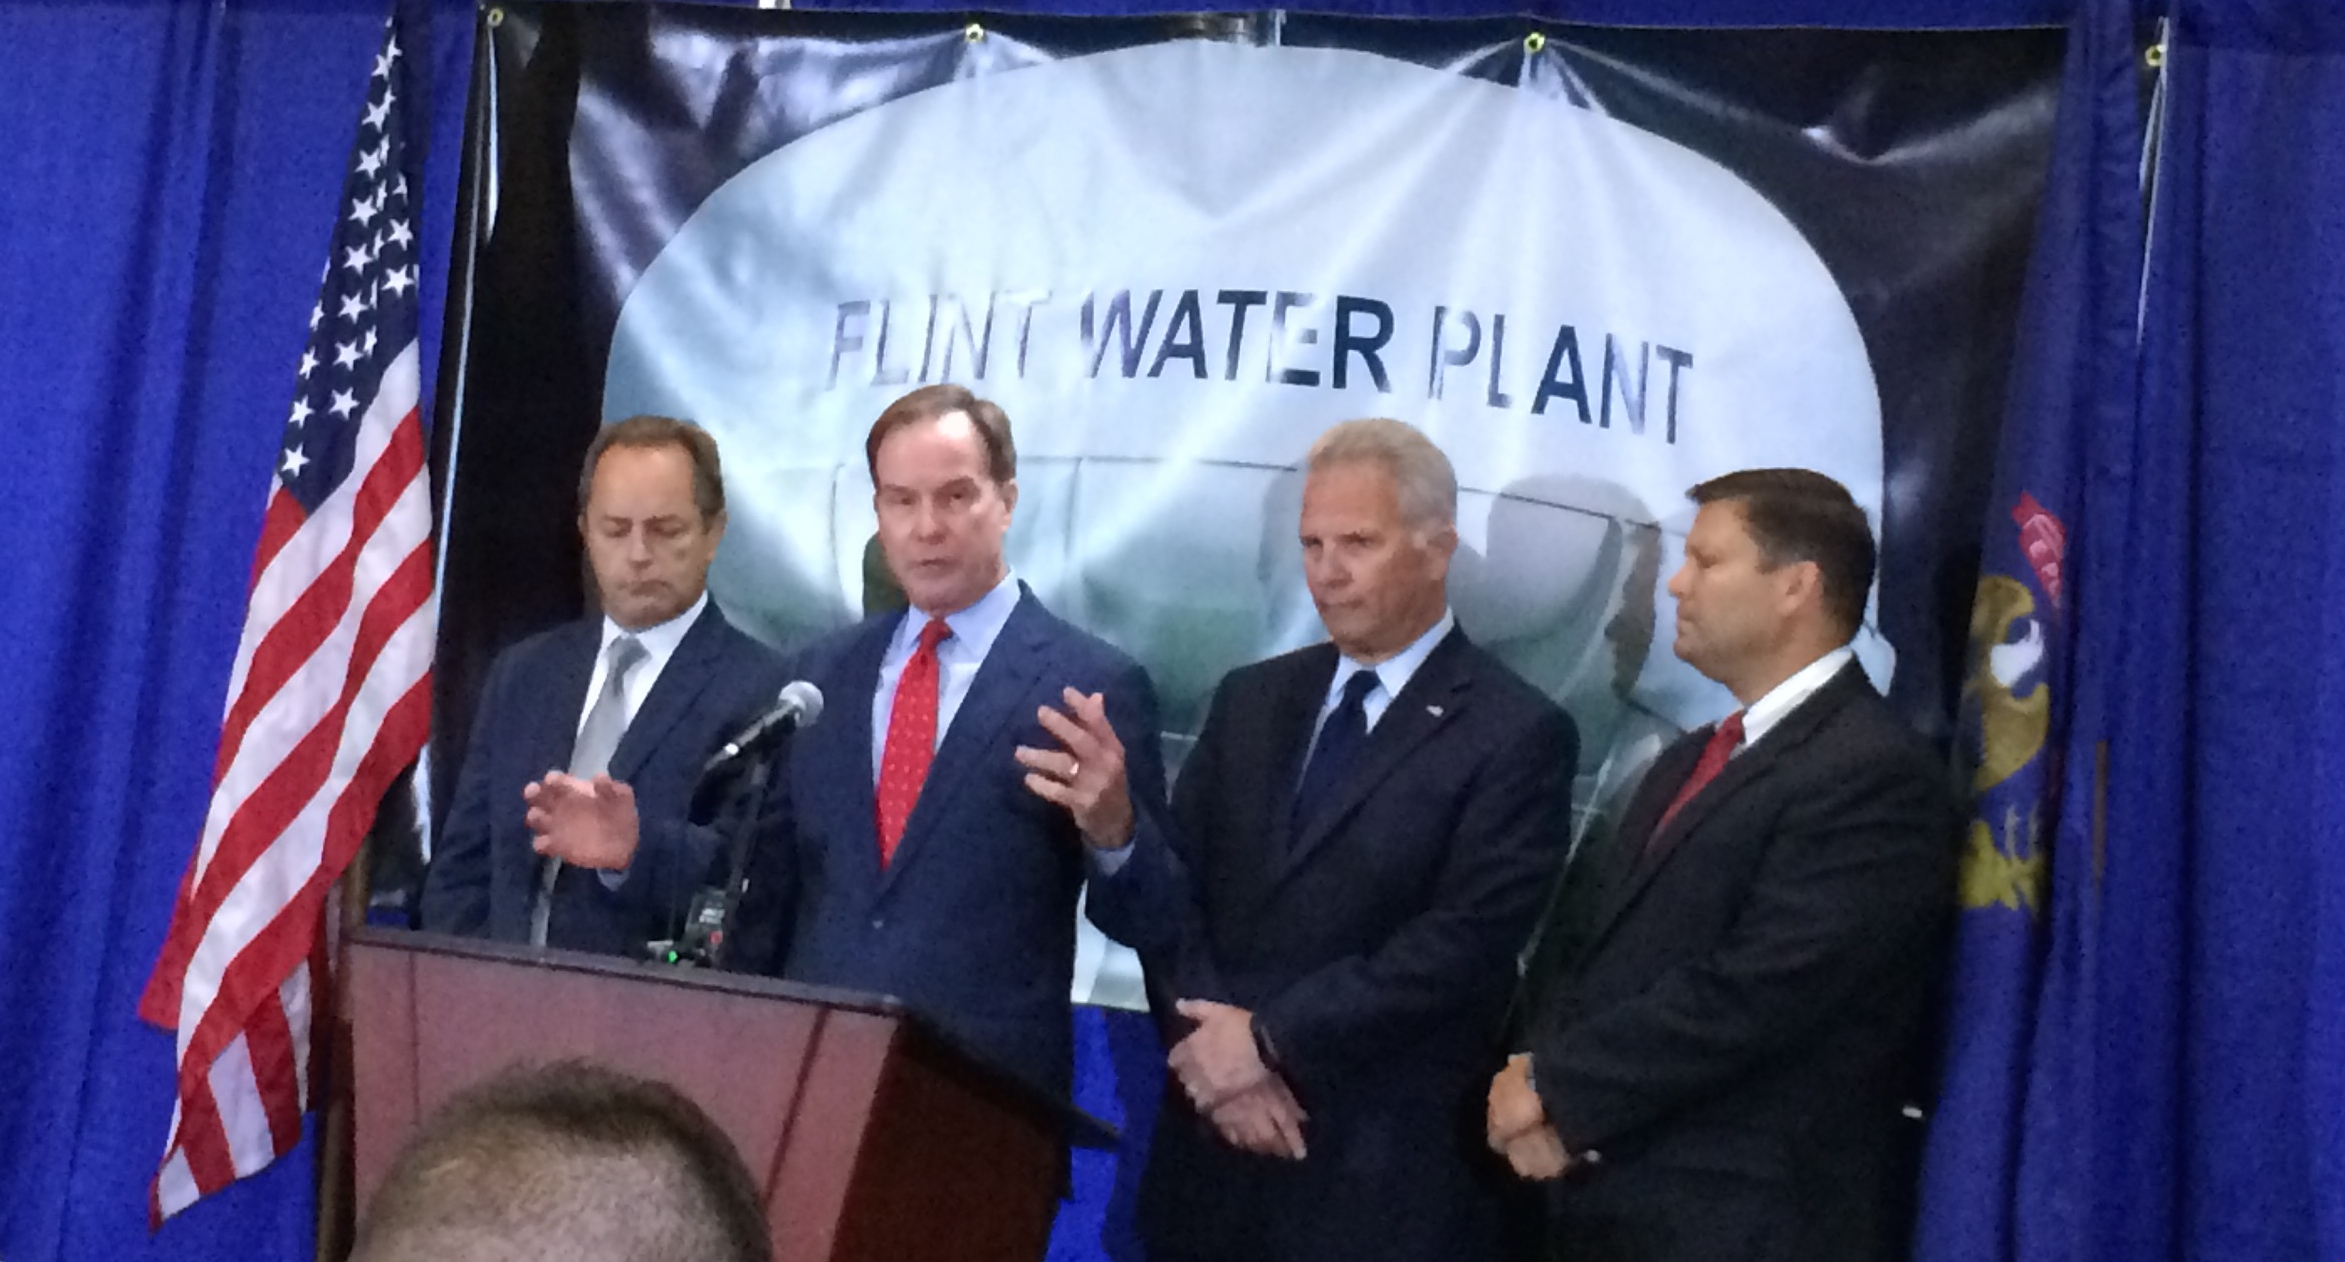 Six Michigan officials criminally charged in Flint water crisis